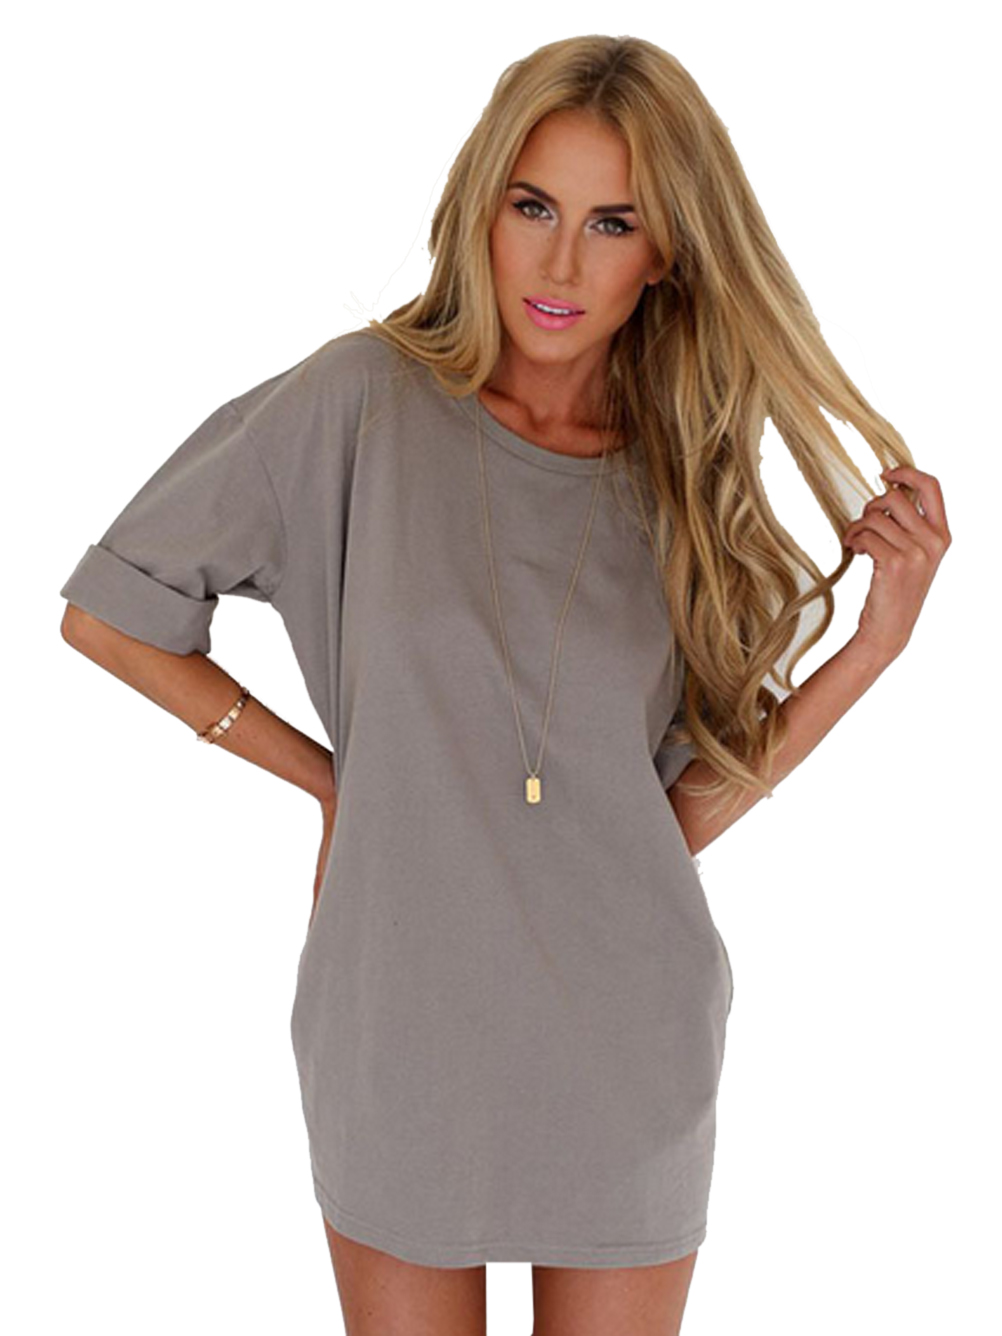 Gray Home Soft Long Shirts Women Loose Oversized Shirts Big Size Polyester  Tunic 2016 Spring Women Casual Summer Blouse Fashion-in Blouses   Shirts  from ... 6803a2faa